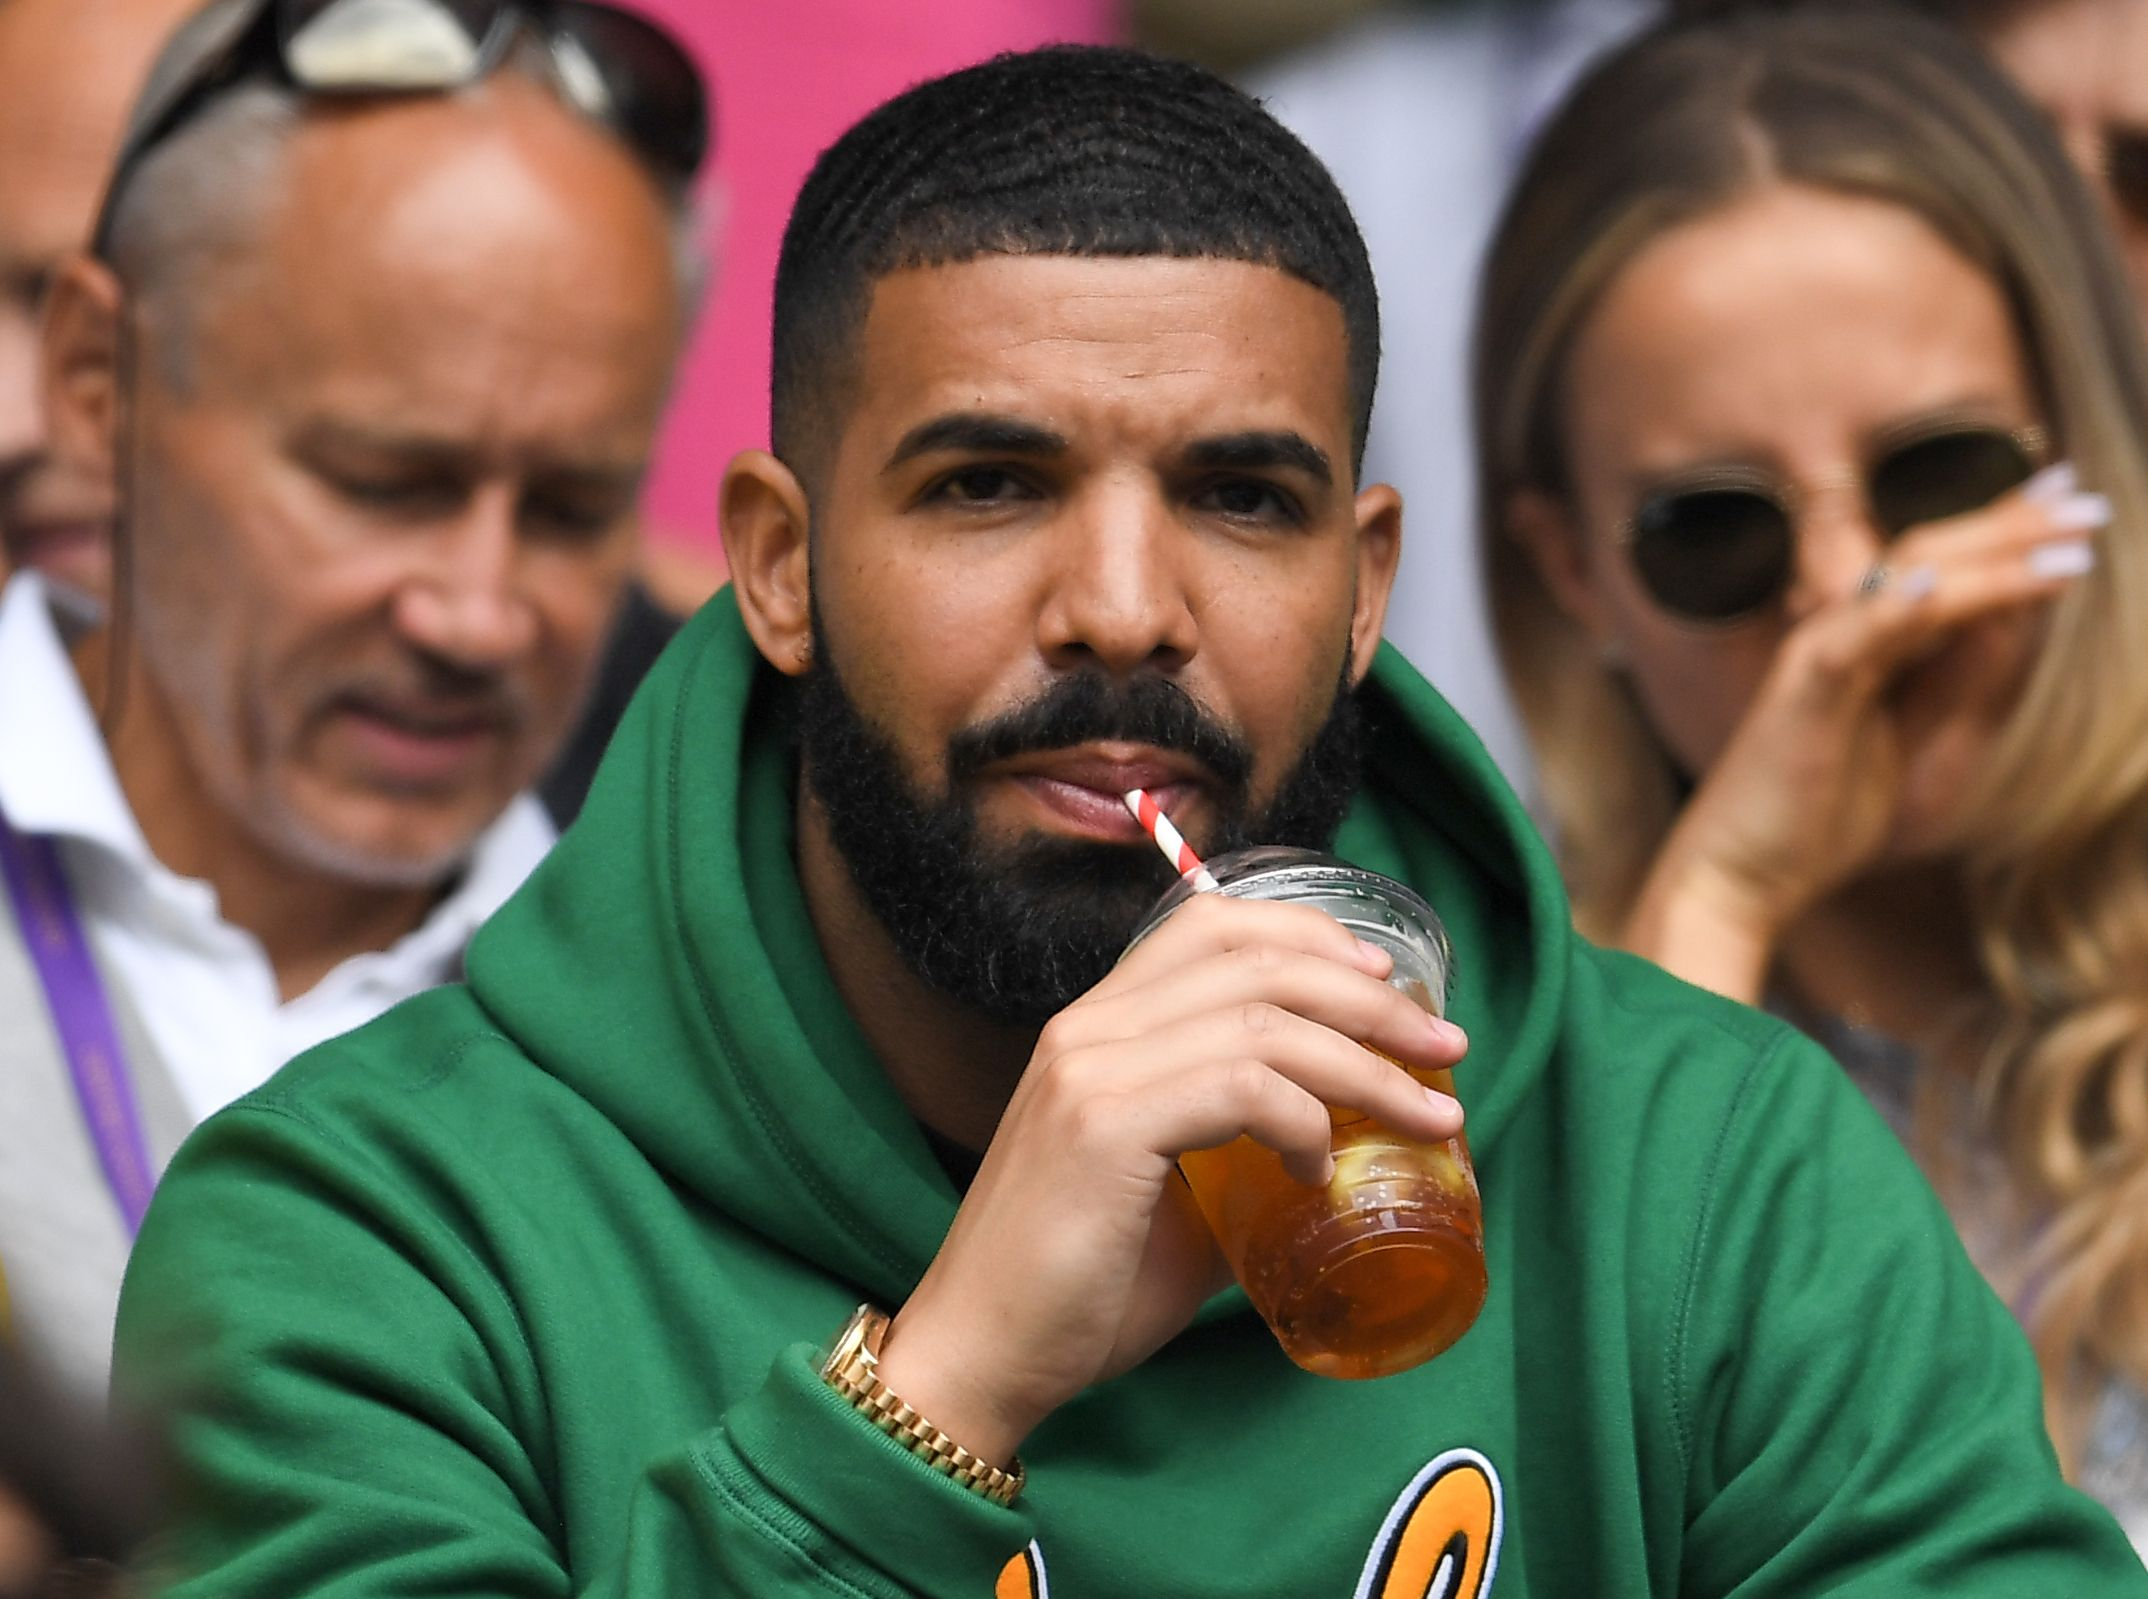 Drake on Centre CourtWimbledon Tennis Championships, Day 8, The All England Lawn Tennis and Croquet Club, London, UK - 10 Jul 2018